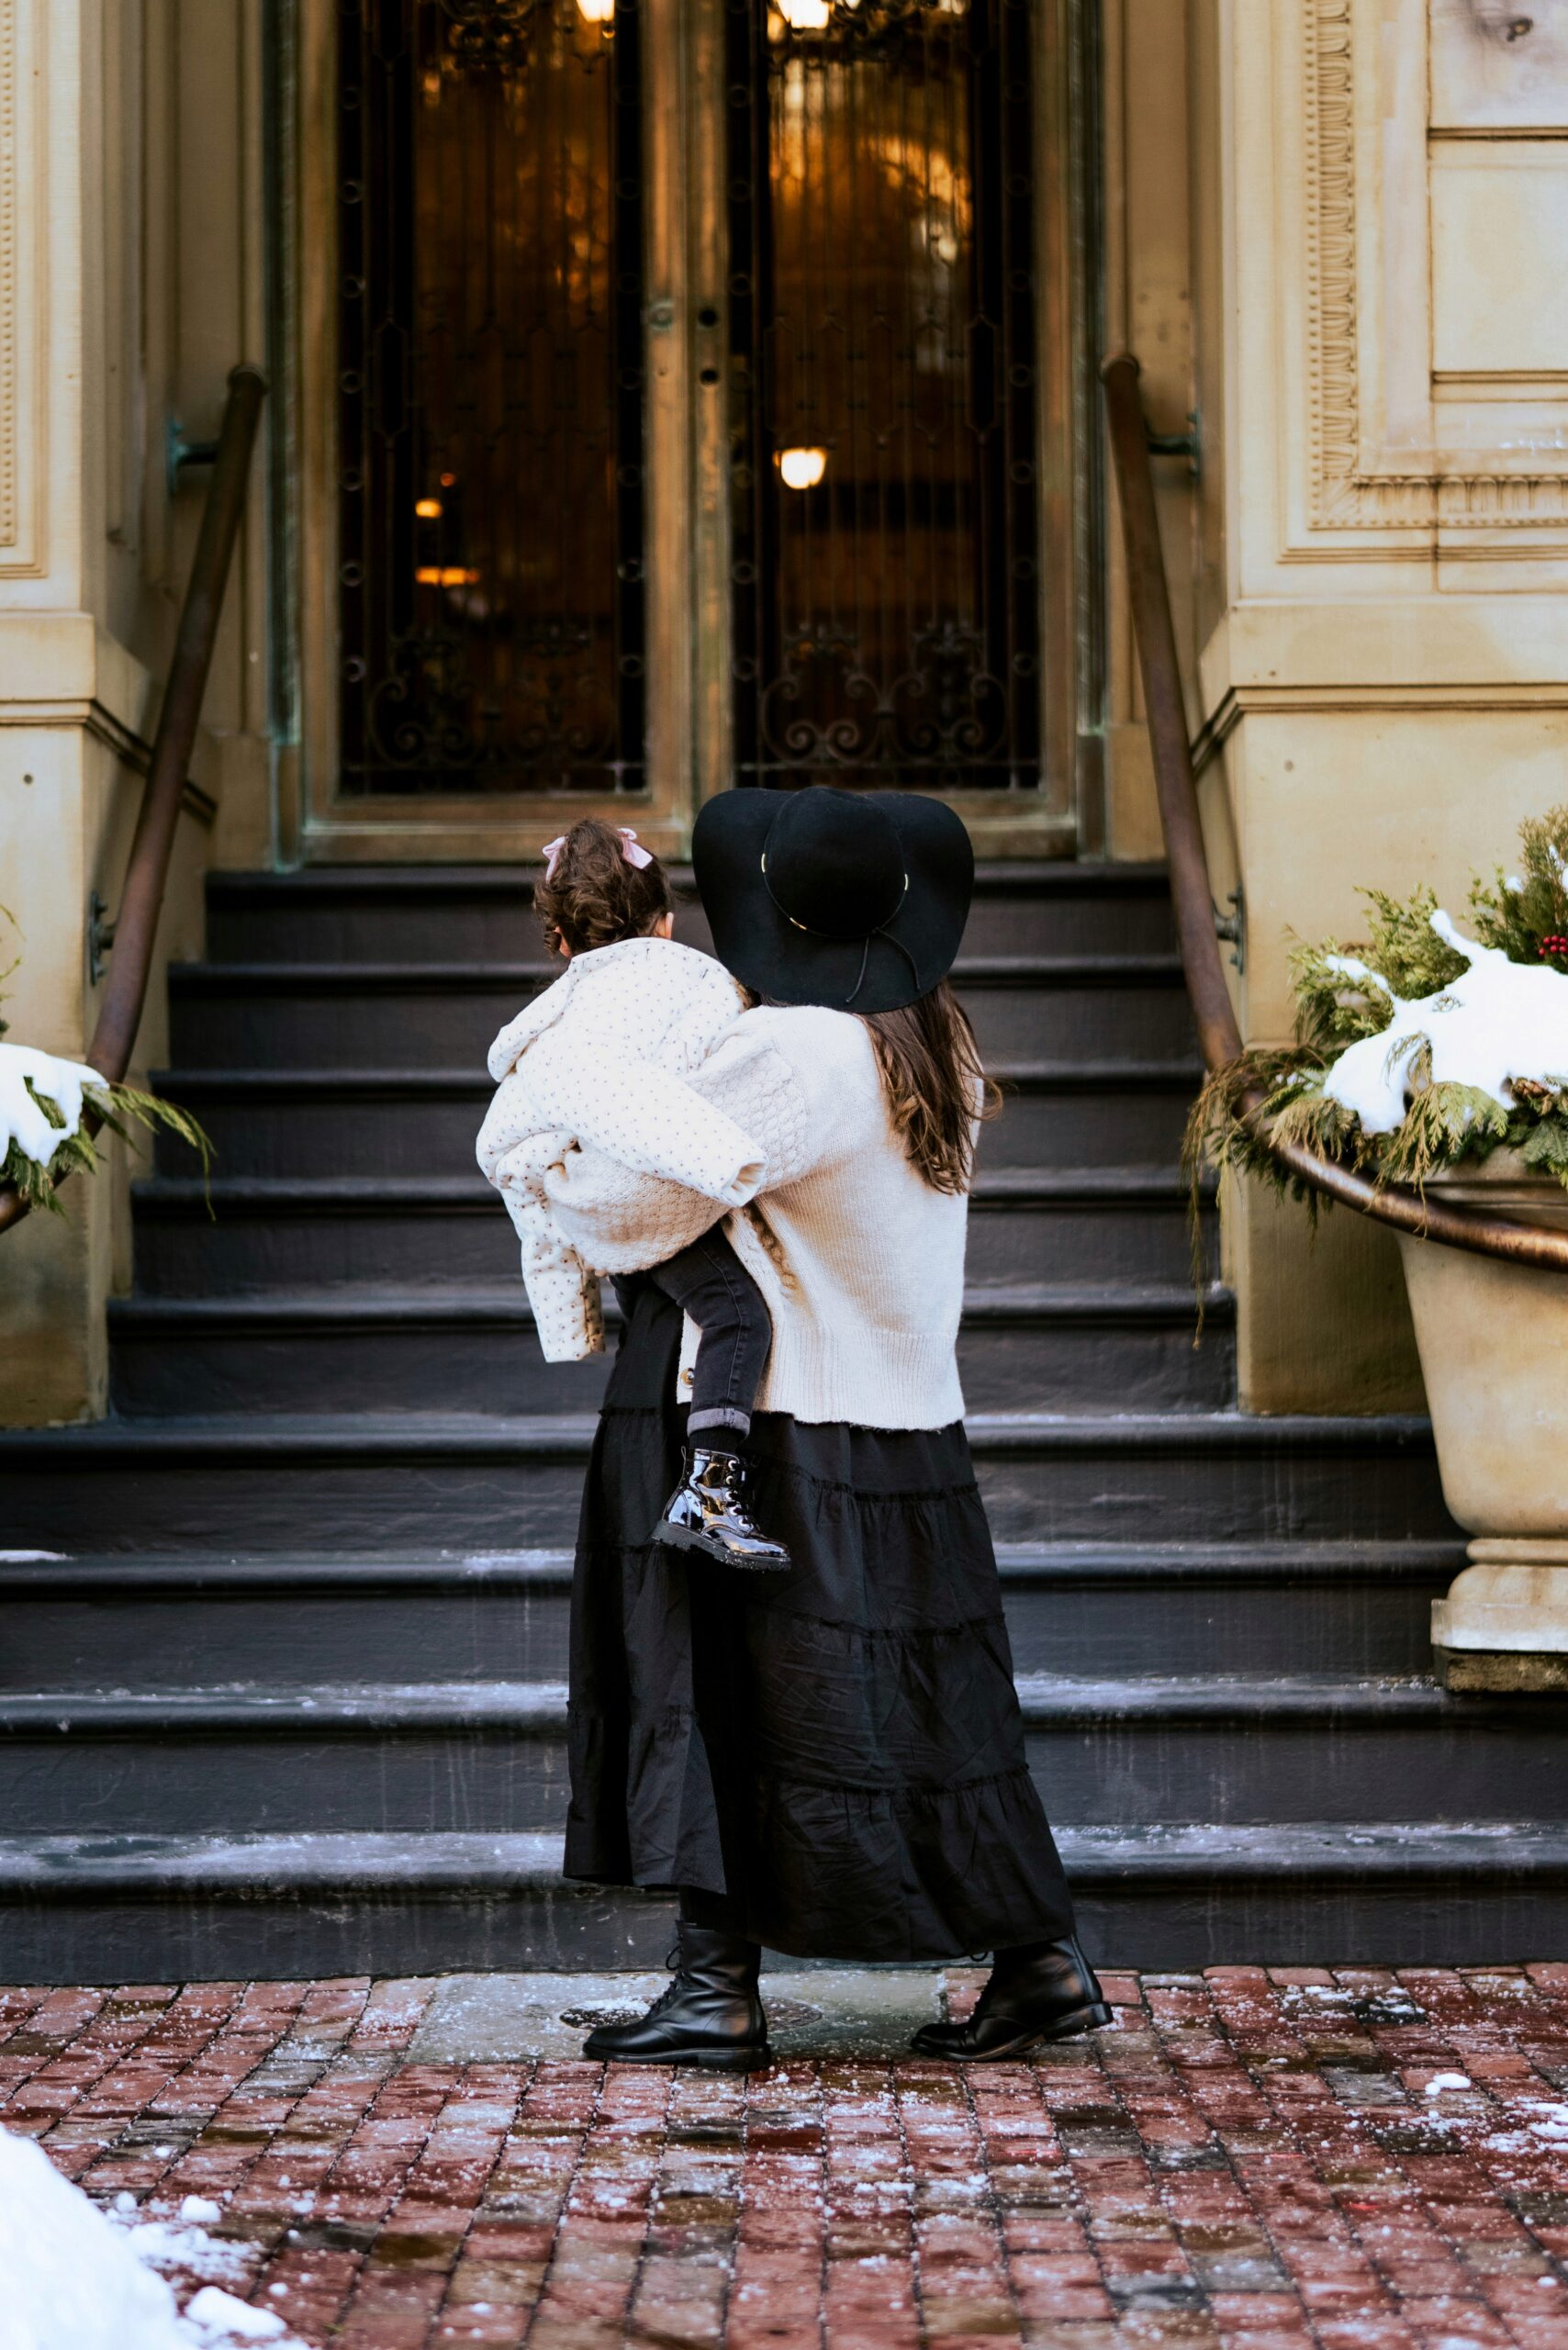 Little Love Notes + Back Bay Brownstone Dreaming - Mom and Daughter - GLITTERINC.COM